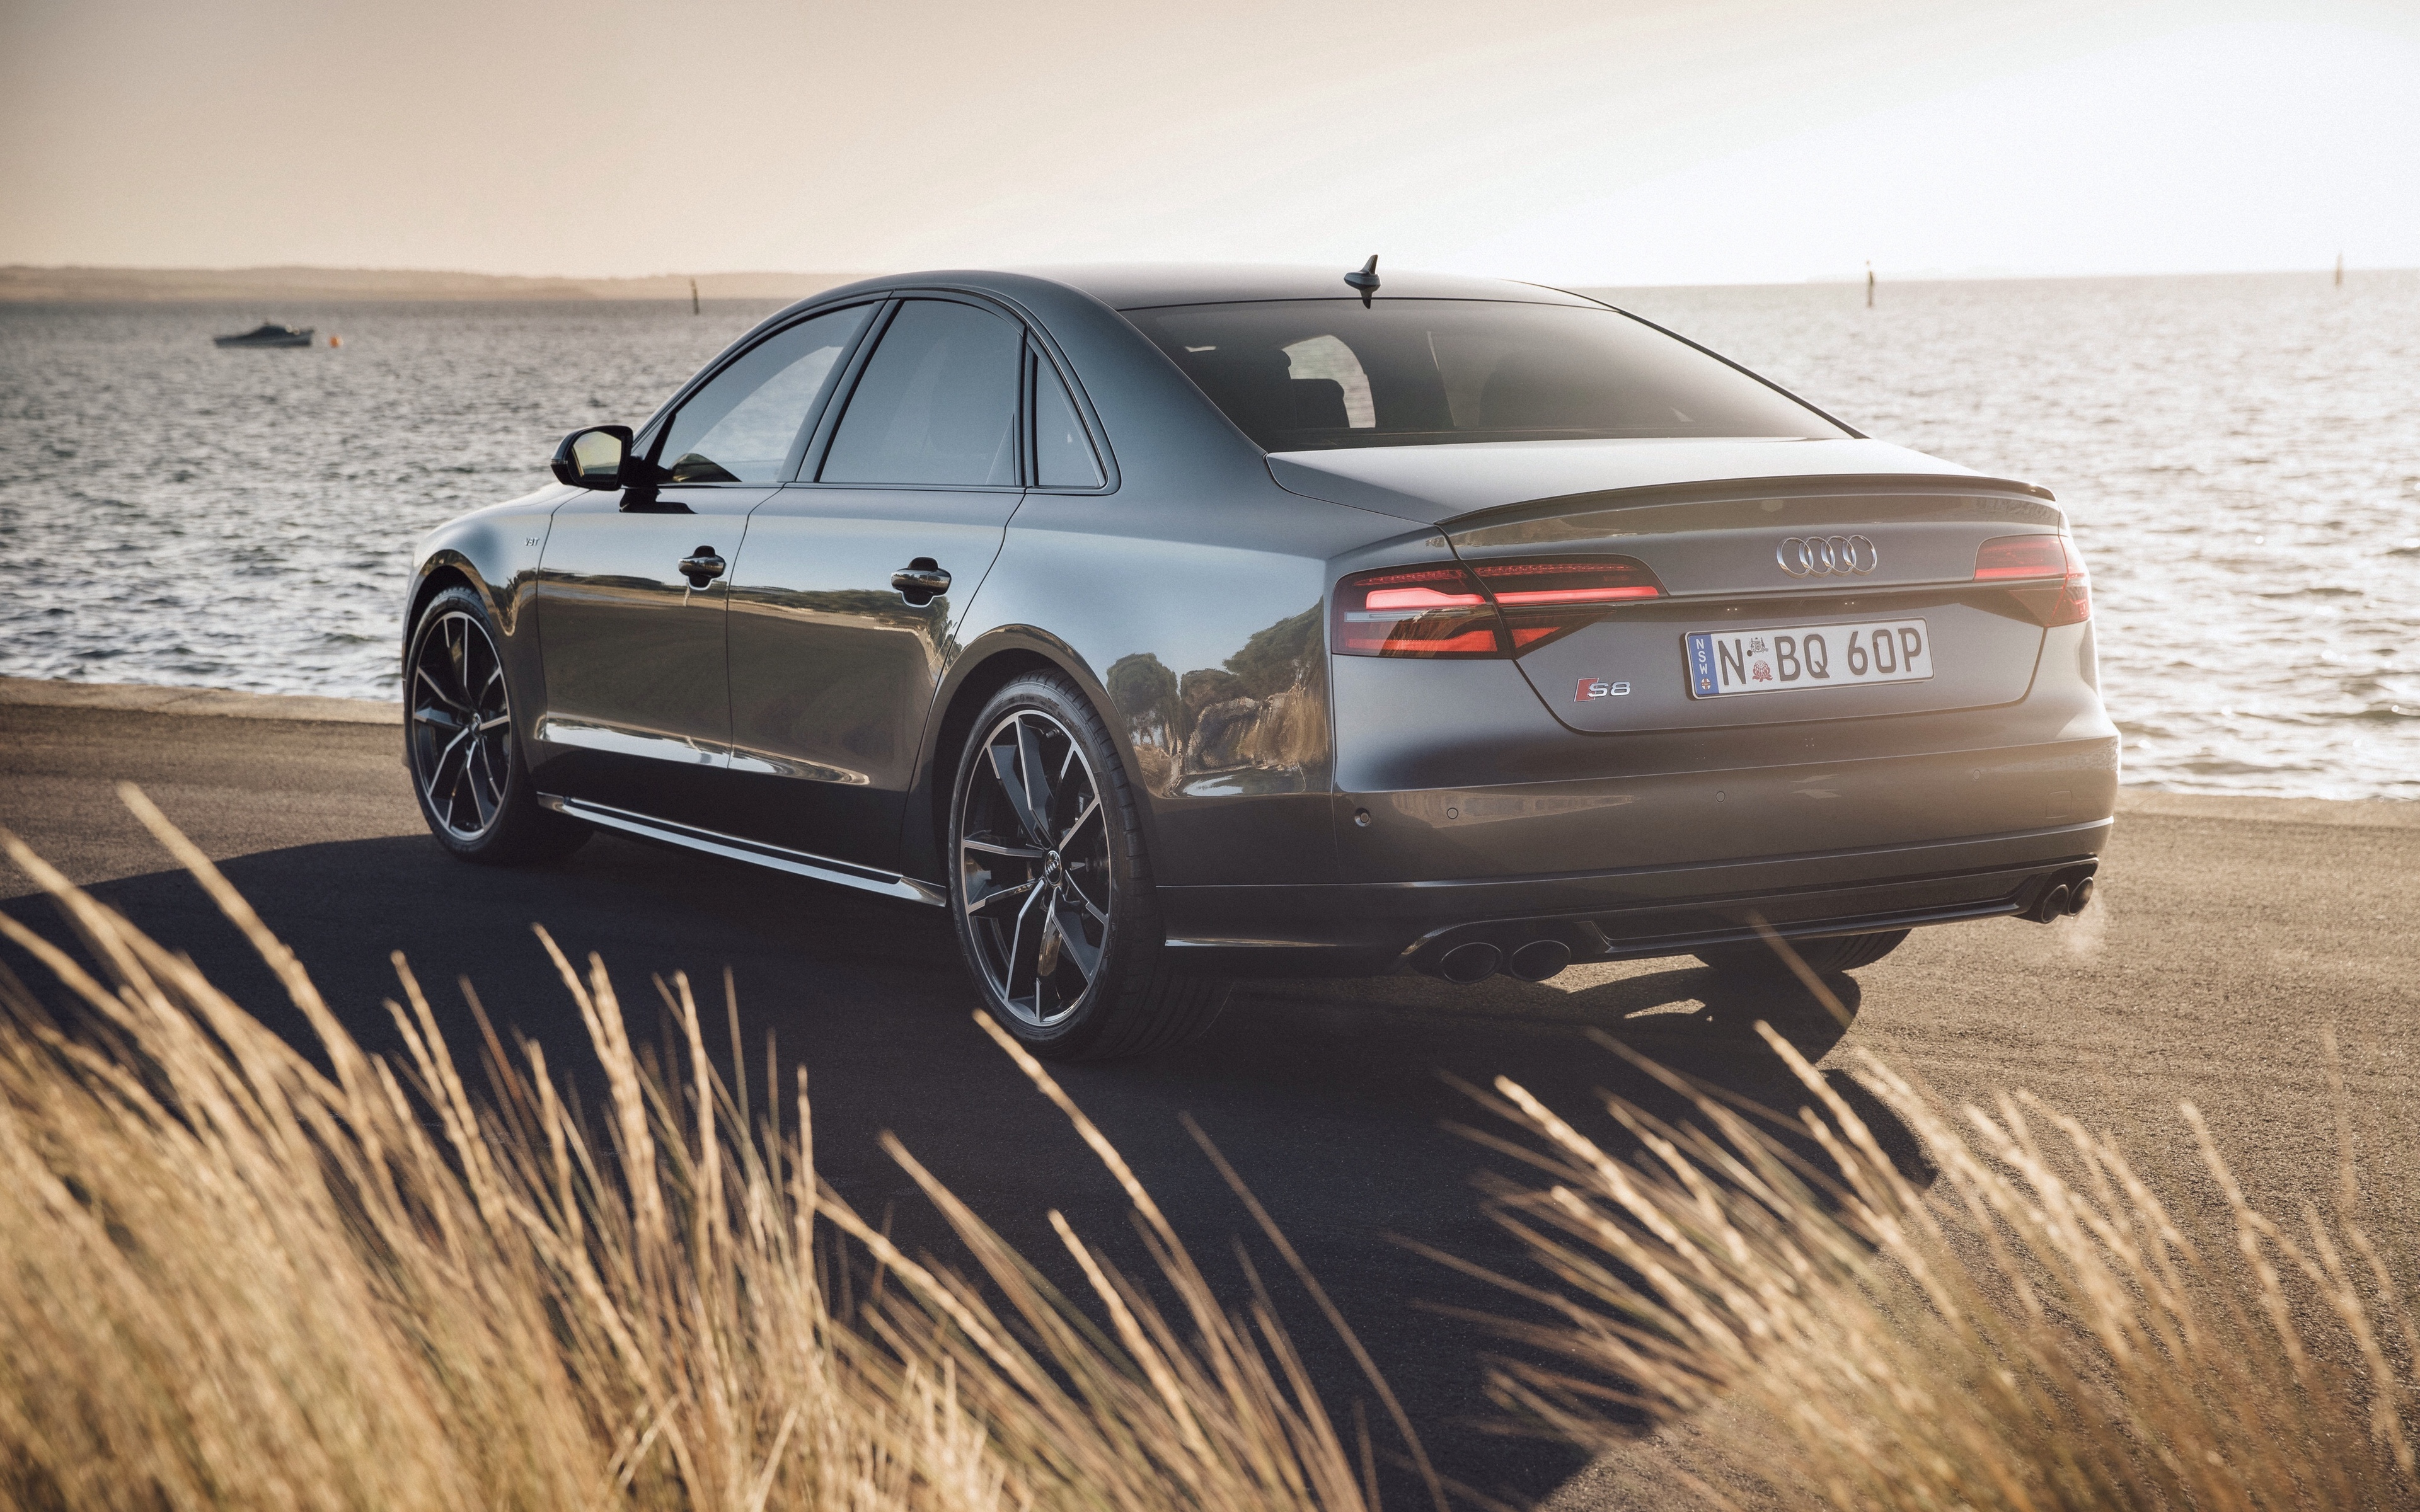 Download wallpaper 3840x2400 audi s8 rear view 4k ultra hd 1610 3840x2400